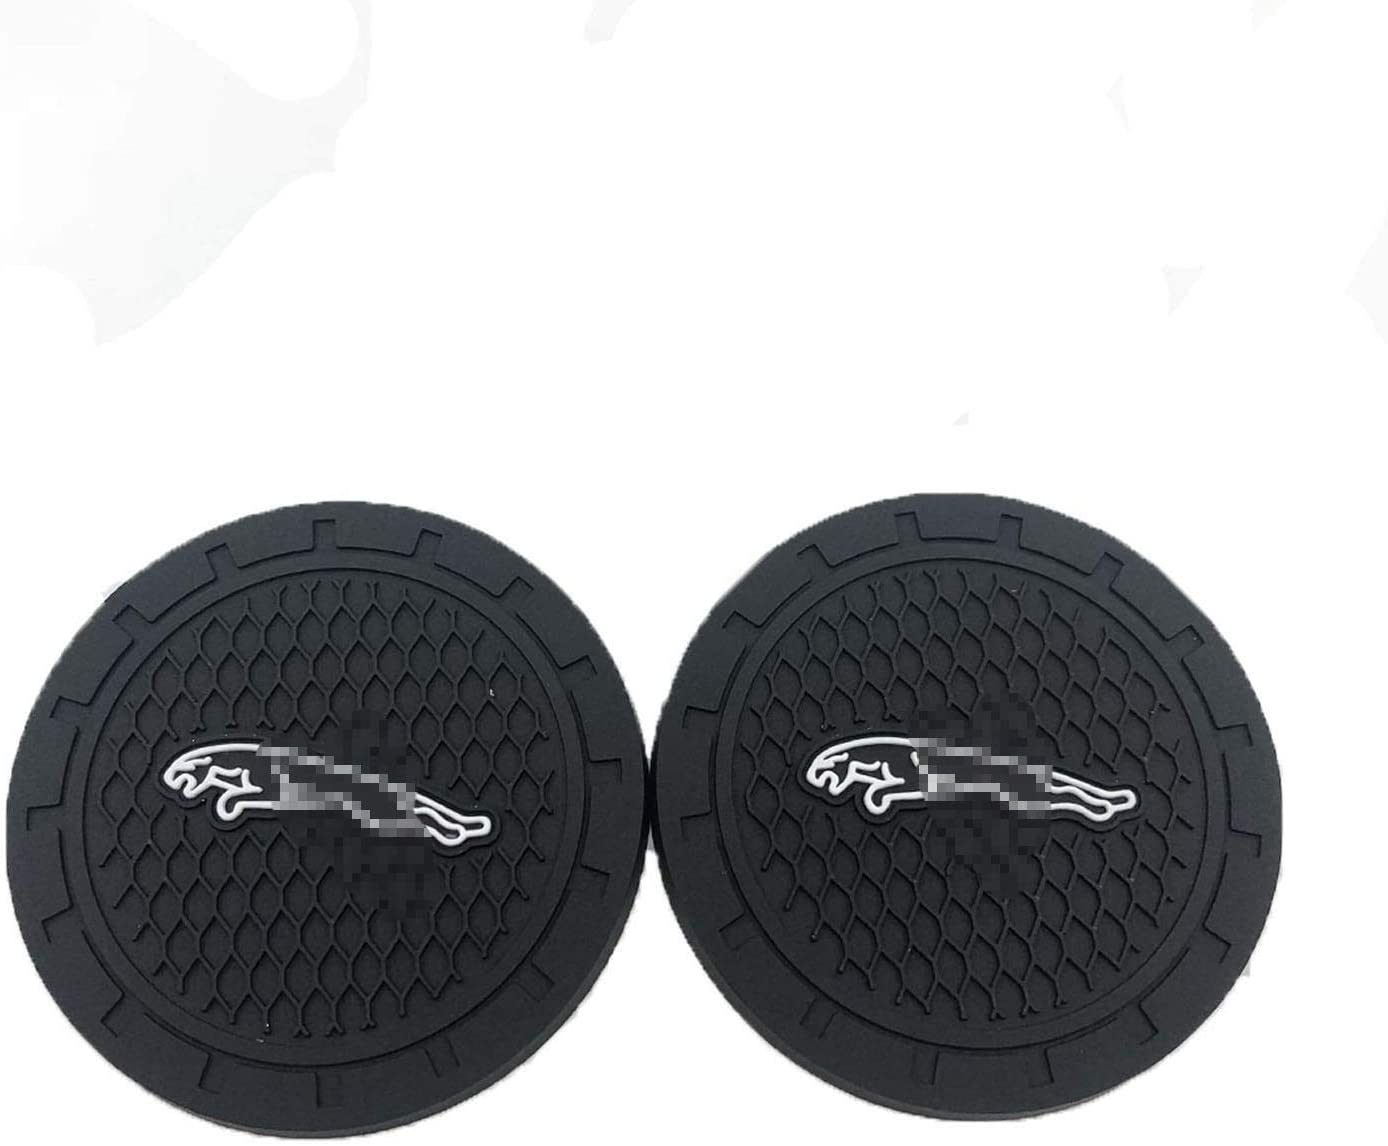 fit Mu-Stang Autosoda 2.75 Inch Diameter Oval Tough Car Logo Cup Coaster by High Grade Silicone Vehicle Travel Auto Cup Logo Heavy Duty Rubber Coaster 2 pcs Set